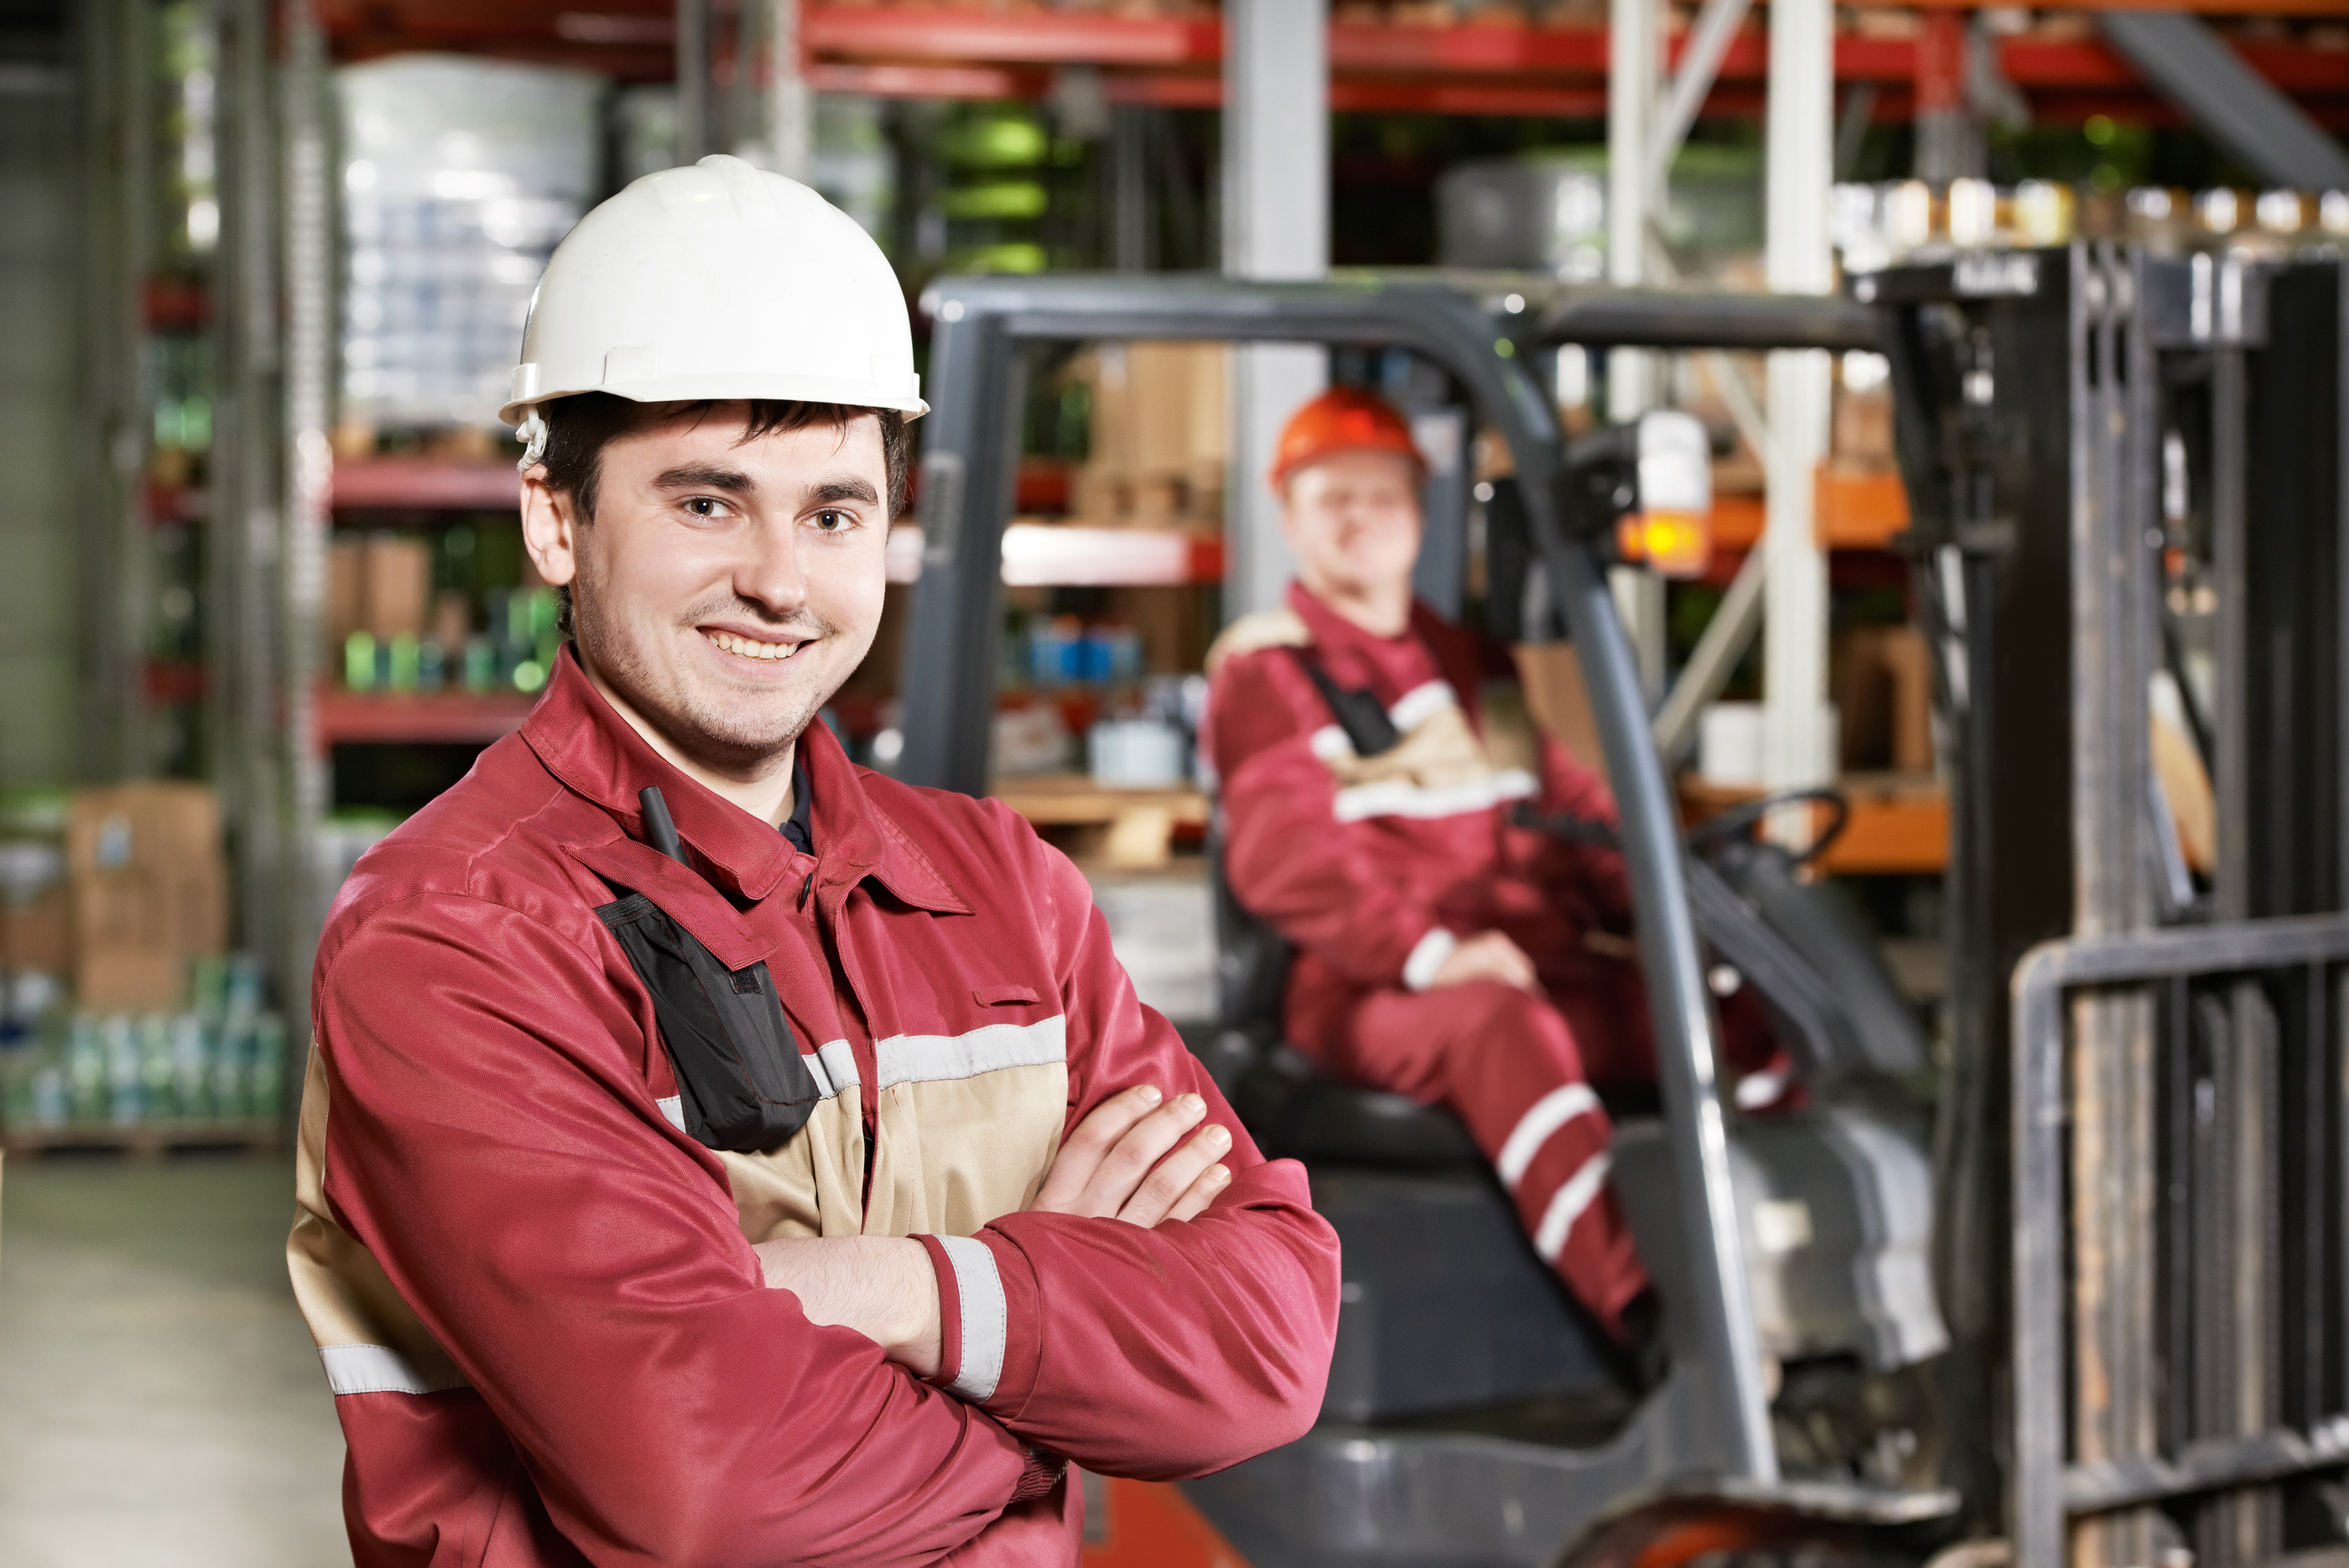 List of Responsibilities for a Warehouse Worker